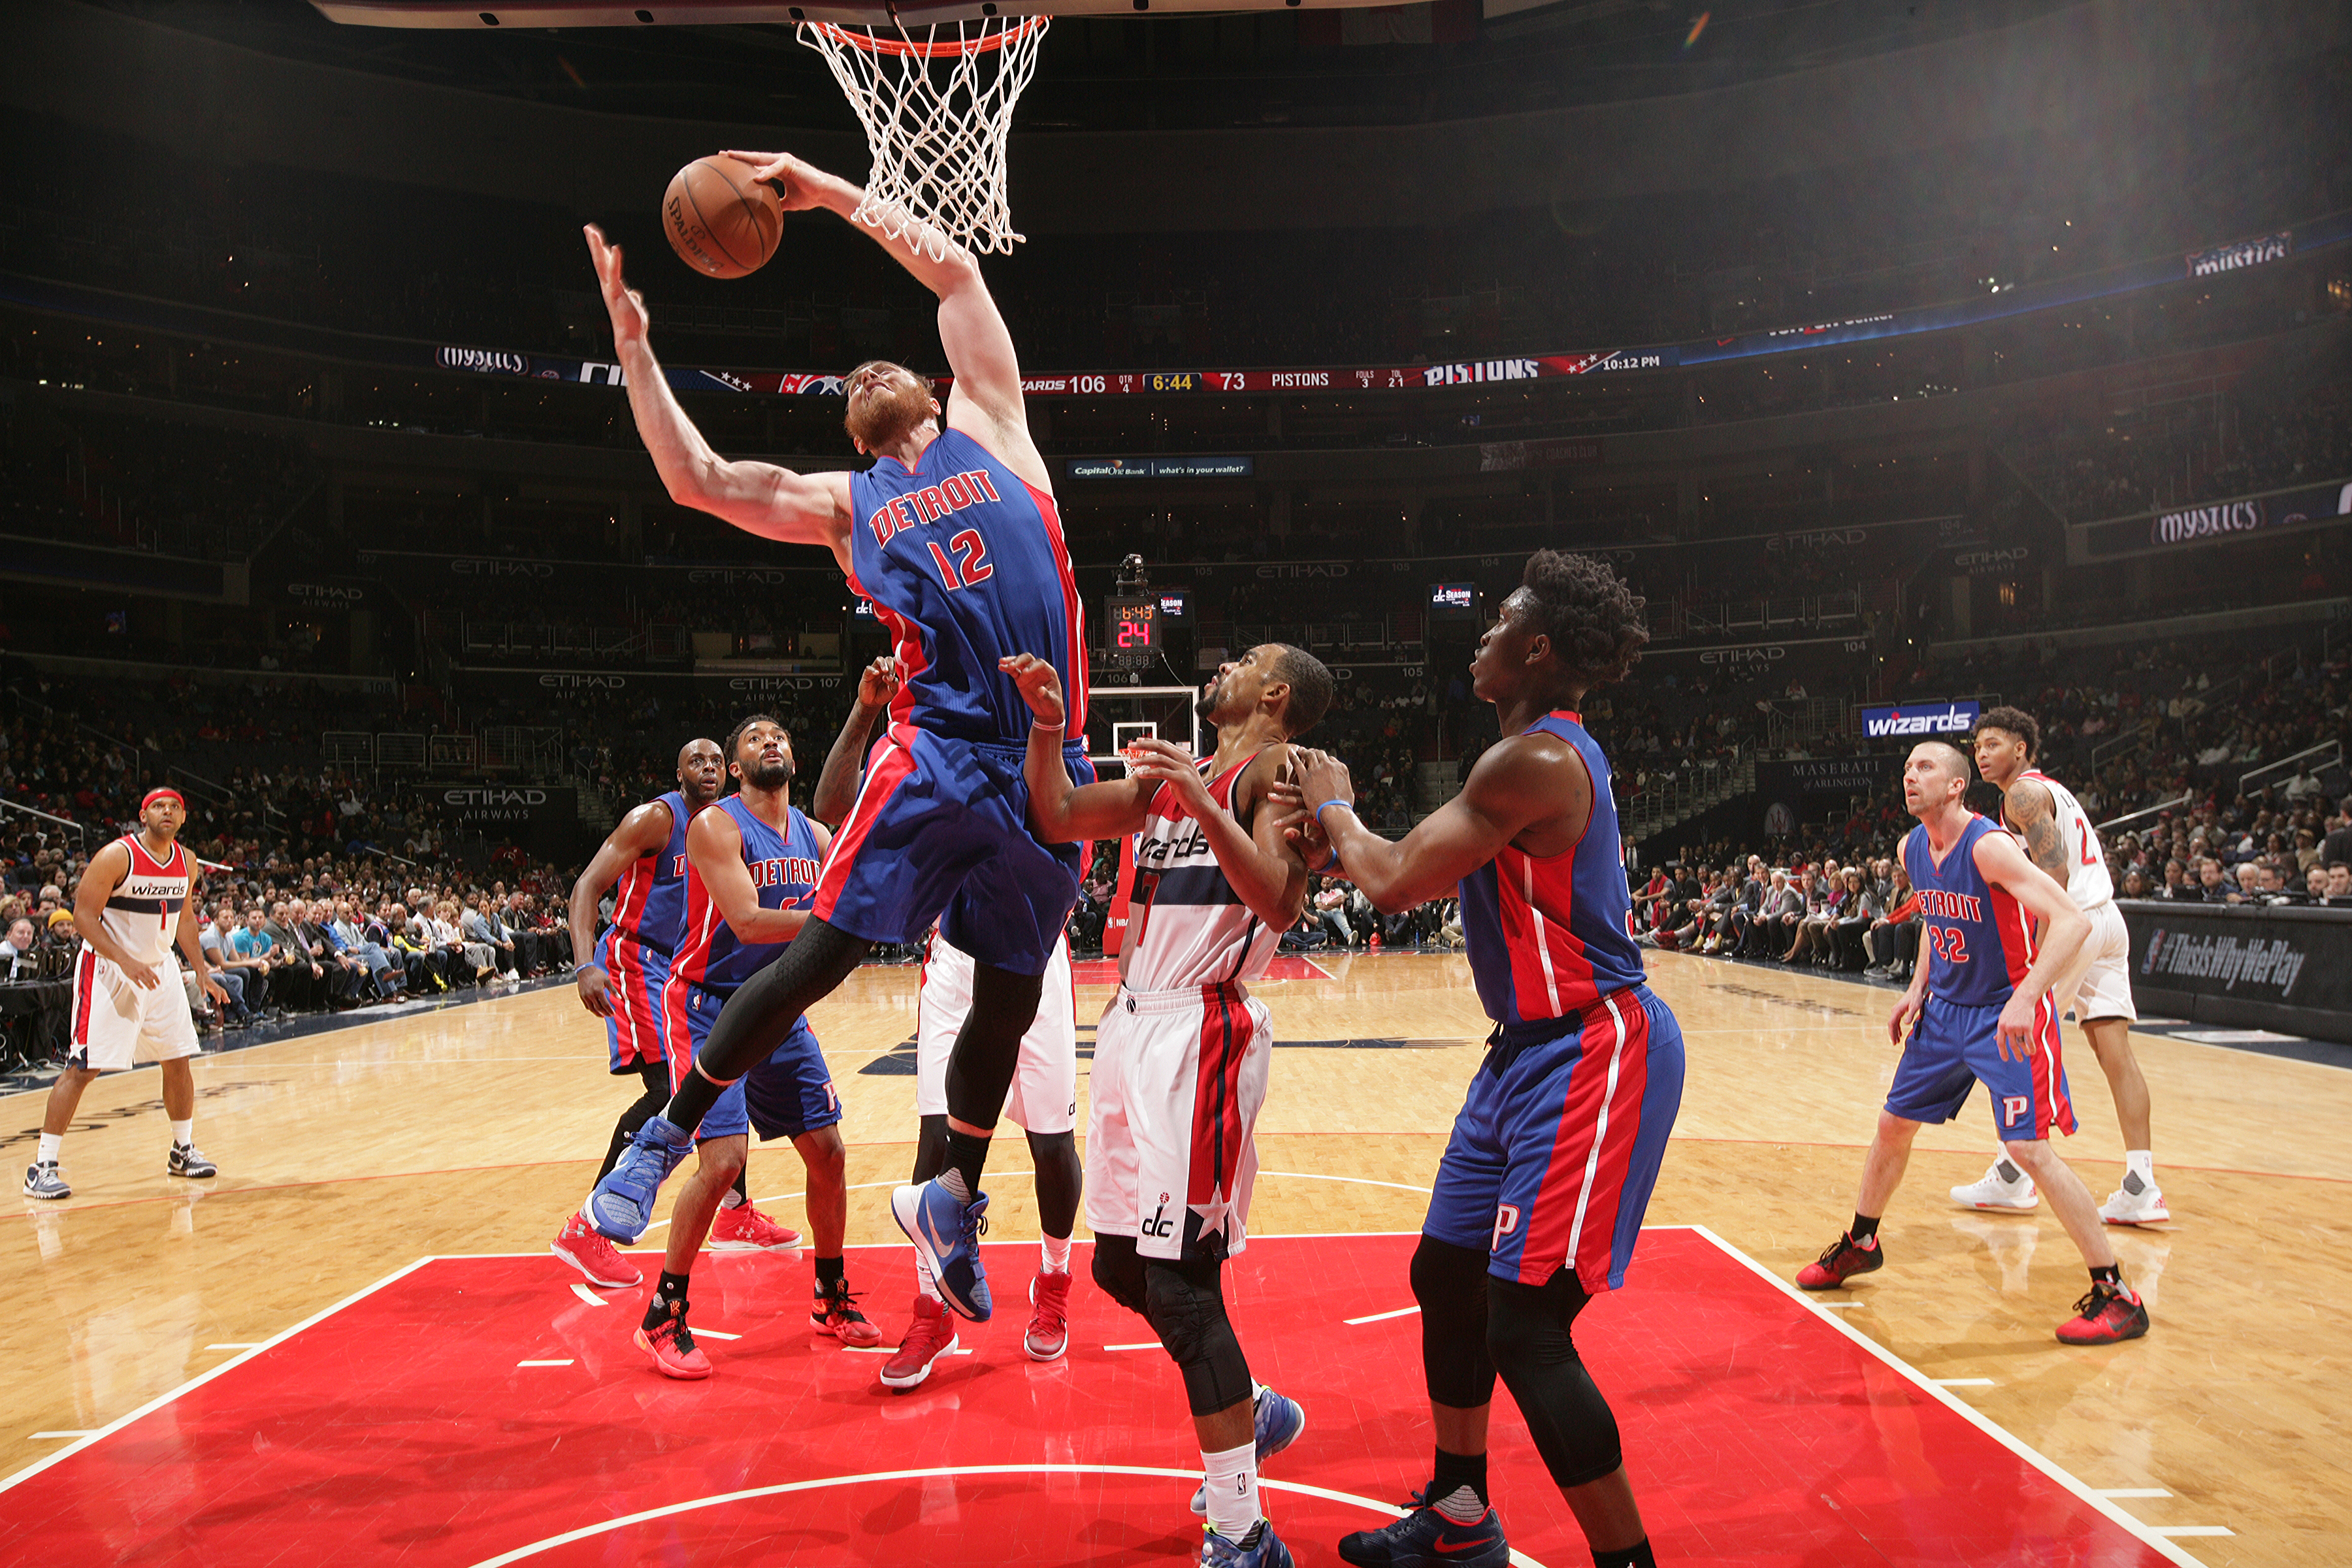 WASHINGTON, DC - MARCH 14: Aron Baynes #12 of the Detroit Pistons grabs the rebound against the Washington Wizards on March 14, 2016 at Verizon Center in Washington, DC. (Photo by Ned Dishman/NBAE via Getty Images)